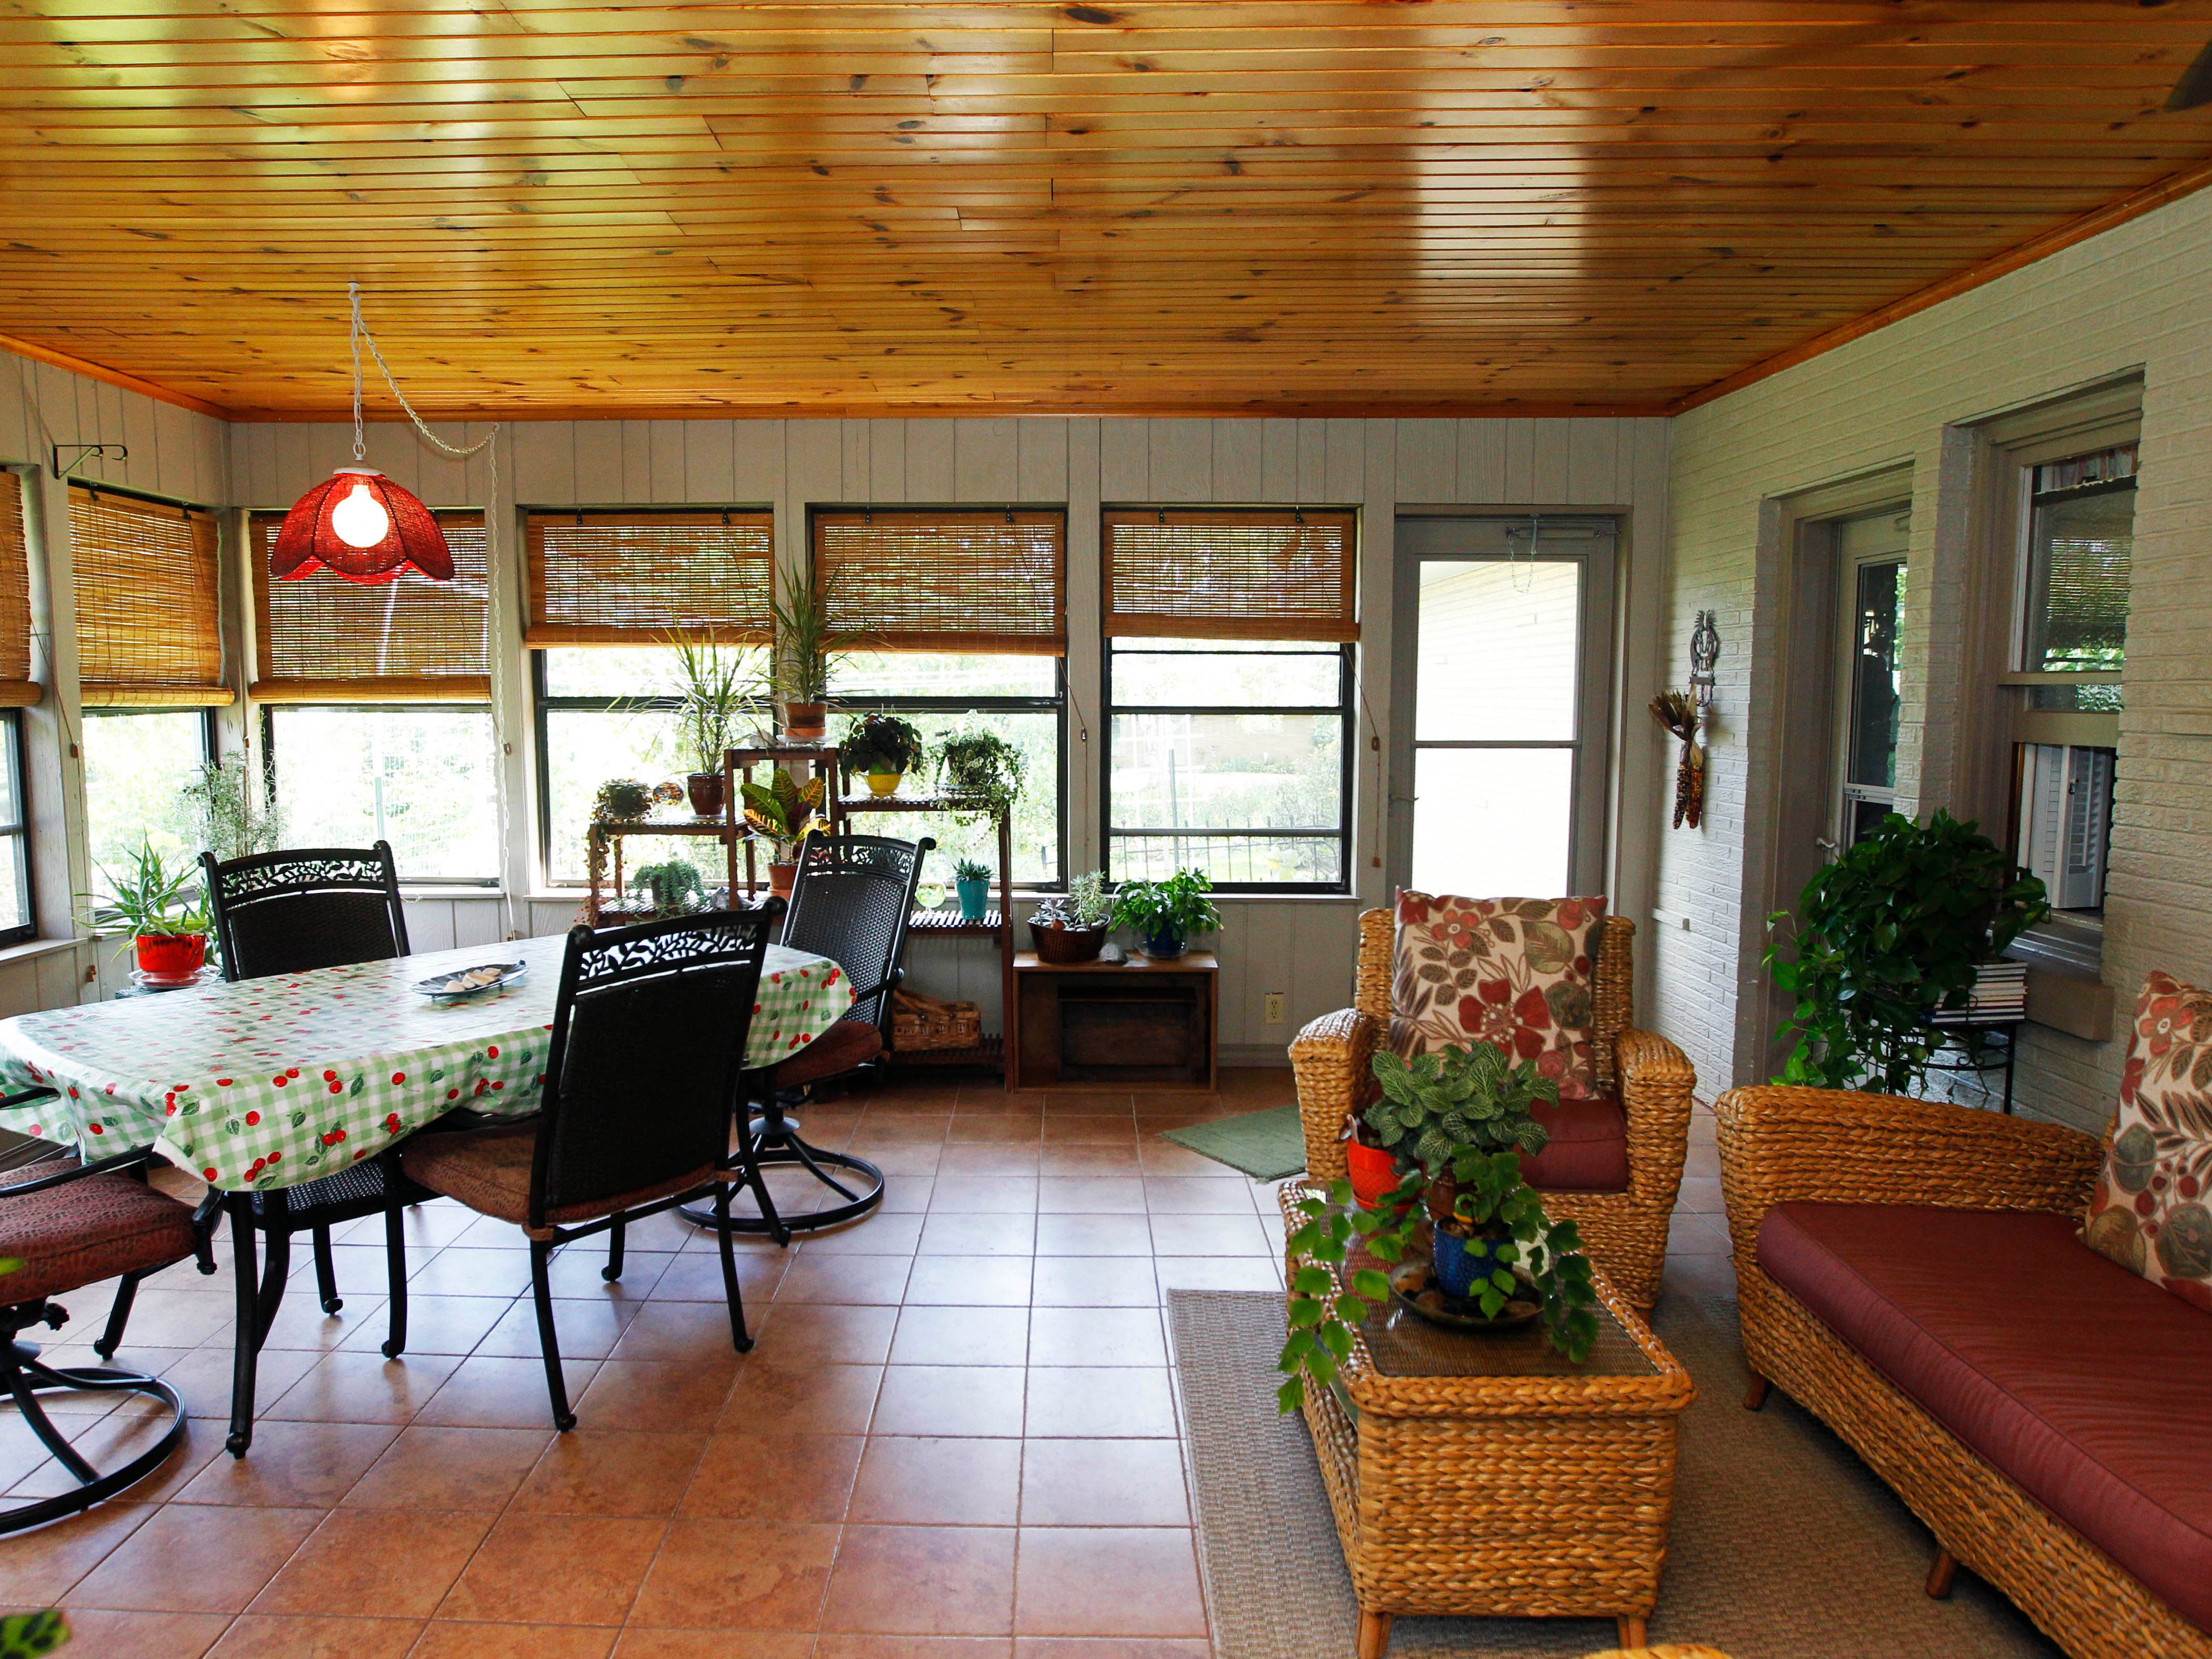 The three season room provides ample light not only for family, but plants as as well.